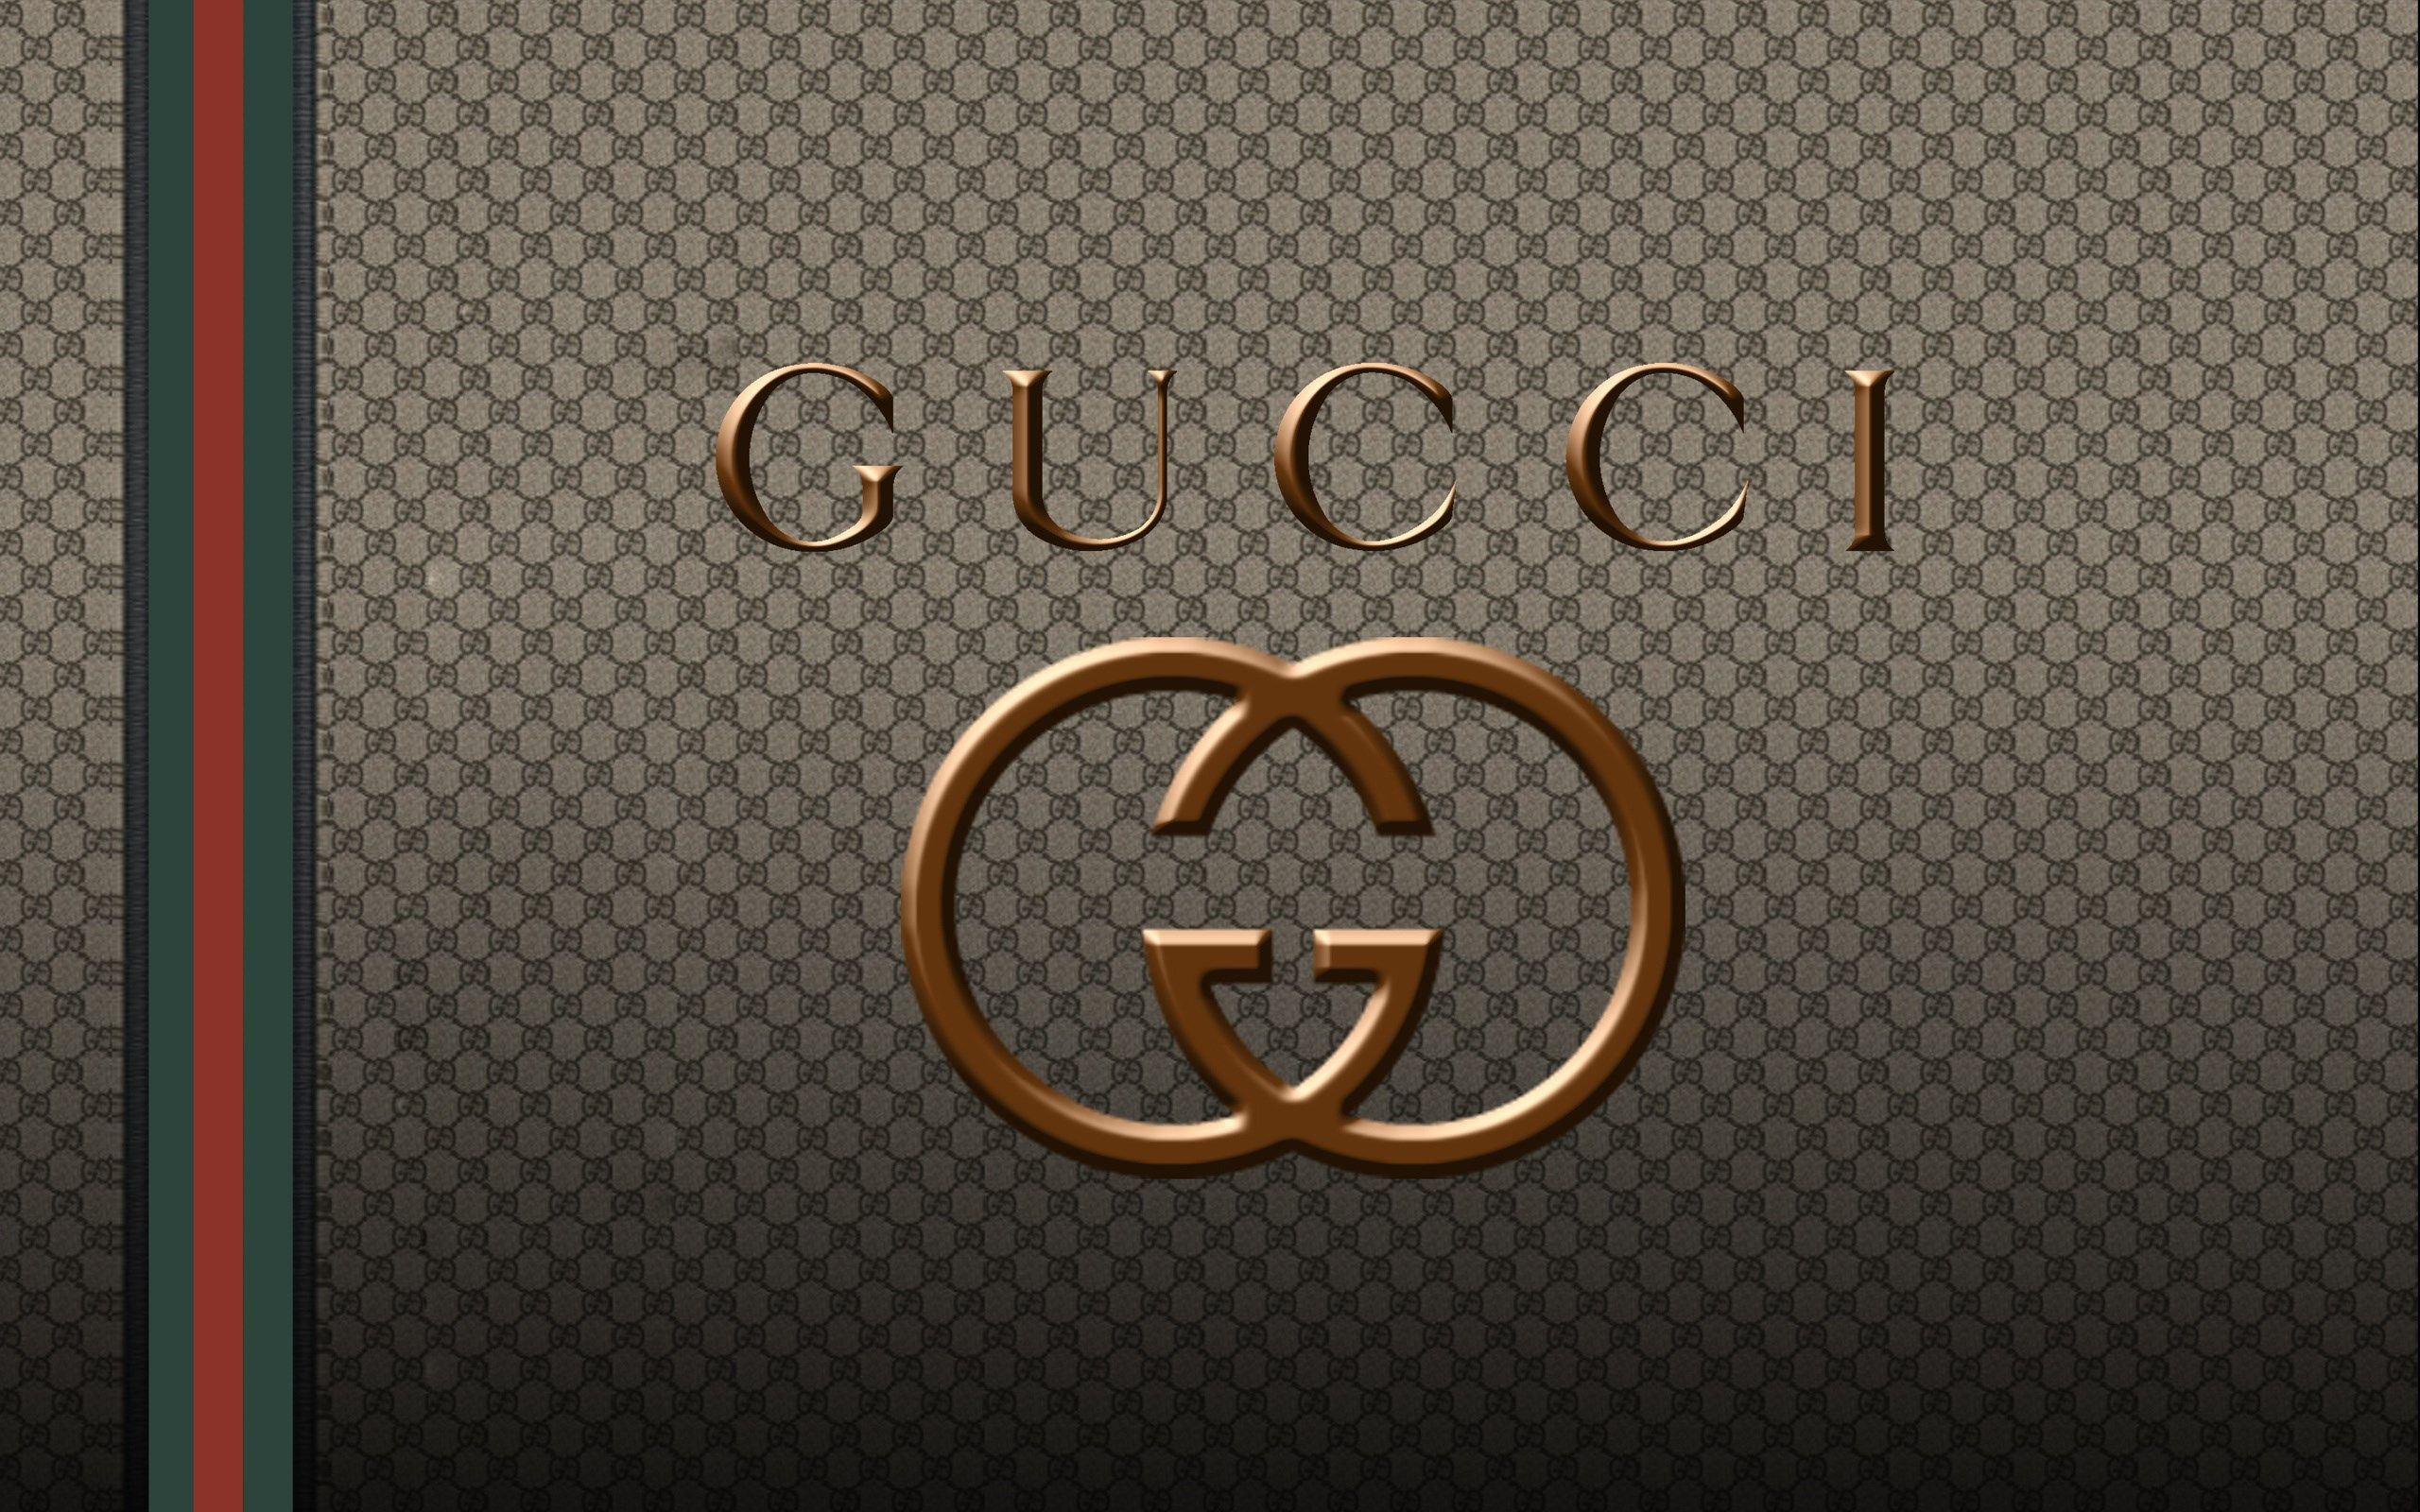 gucci logo wallpapers hd pictures images Hd picture Logo 2560x1600